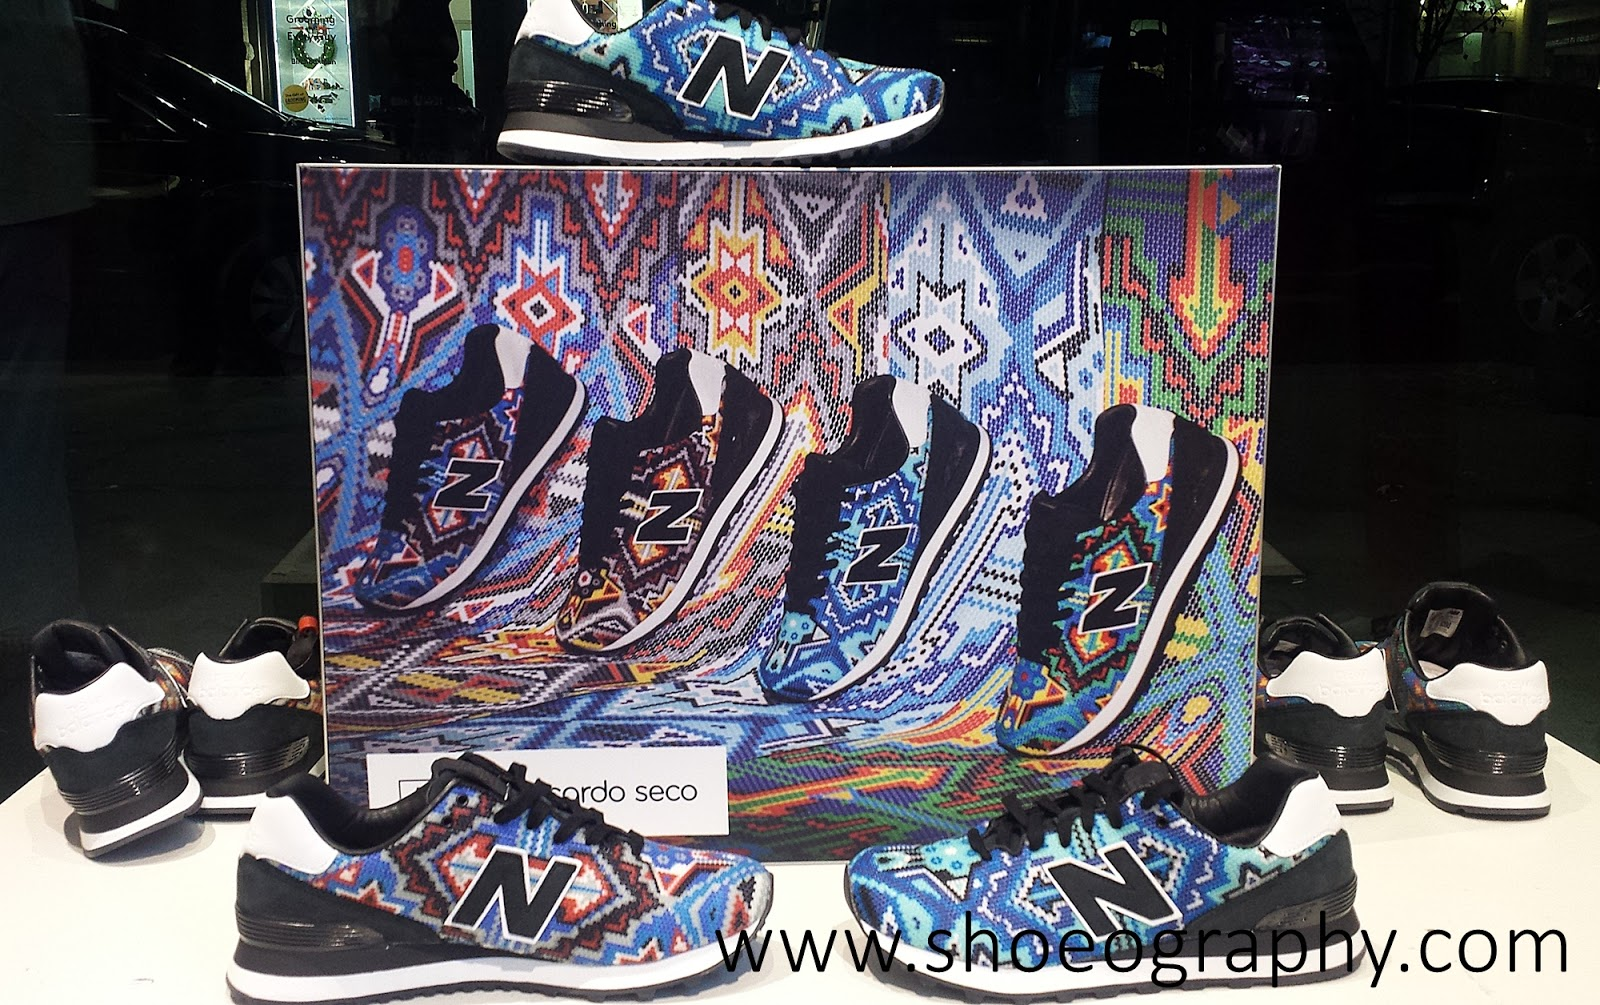 new concept ec1d3 c38fb Ricardo Seco x New Balance 574 Sneakers | SHOEOGRAPHY